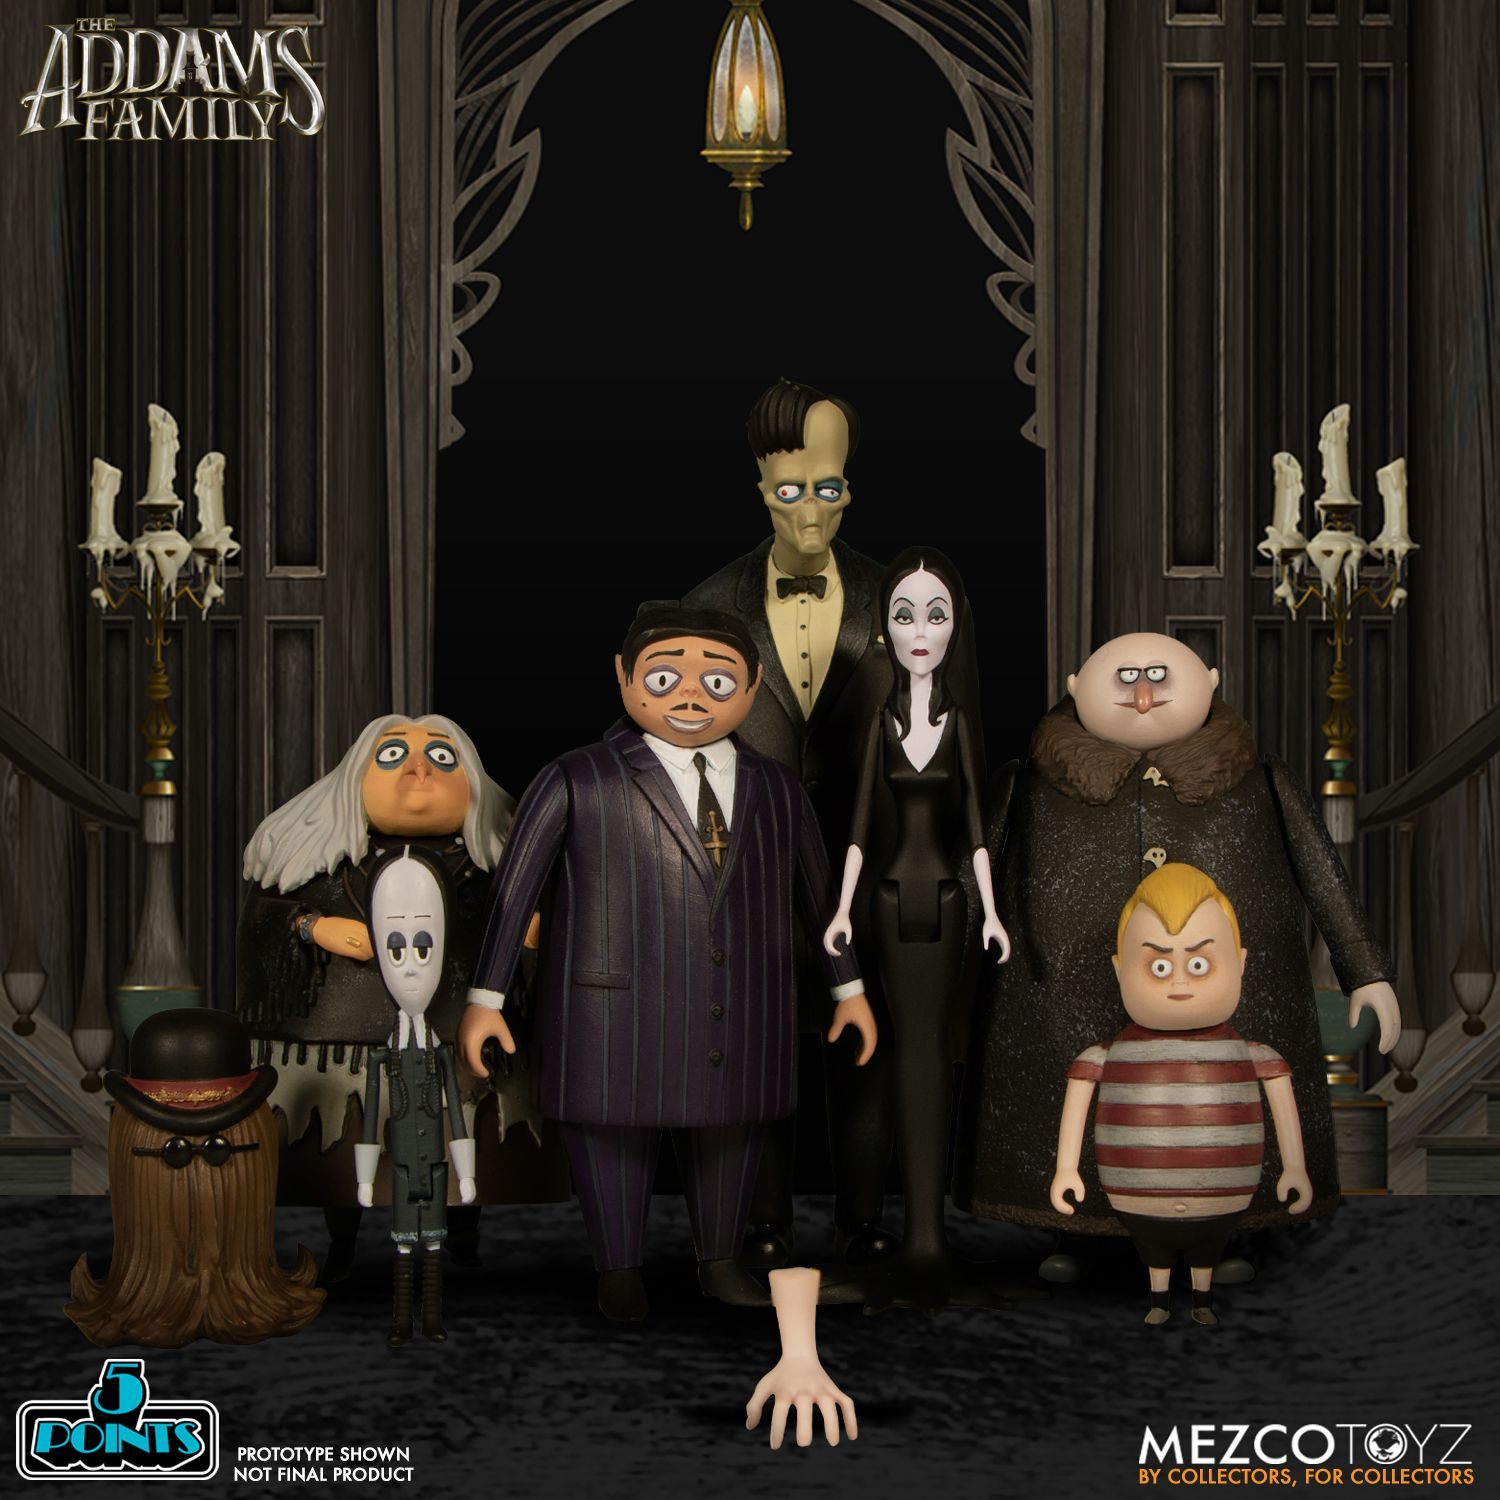 5 Points The Addams Family Lurch It Thing Mezco Toyz